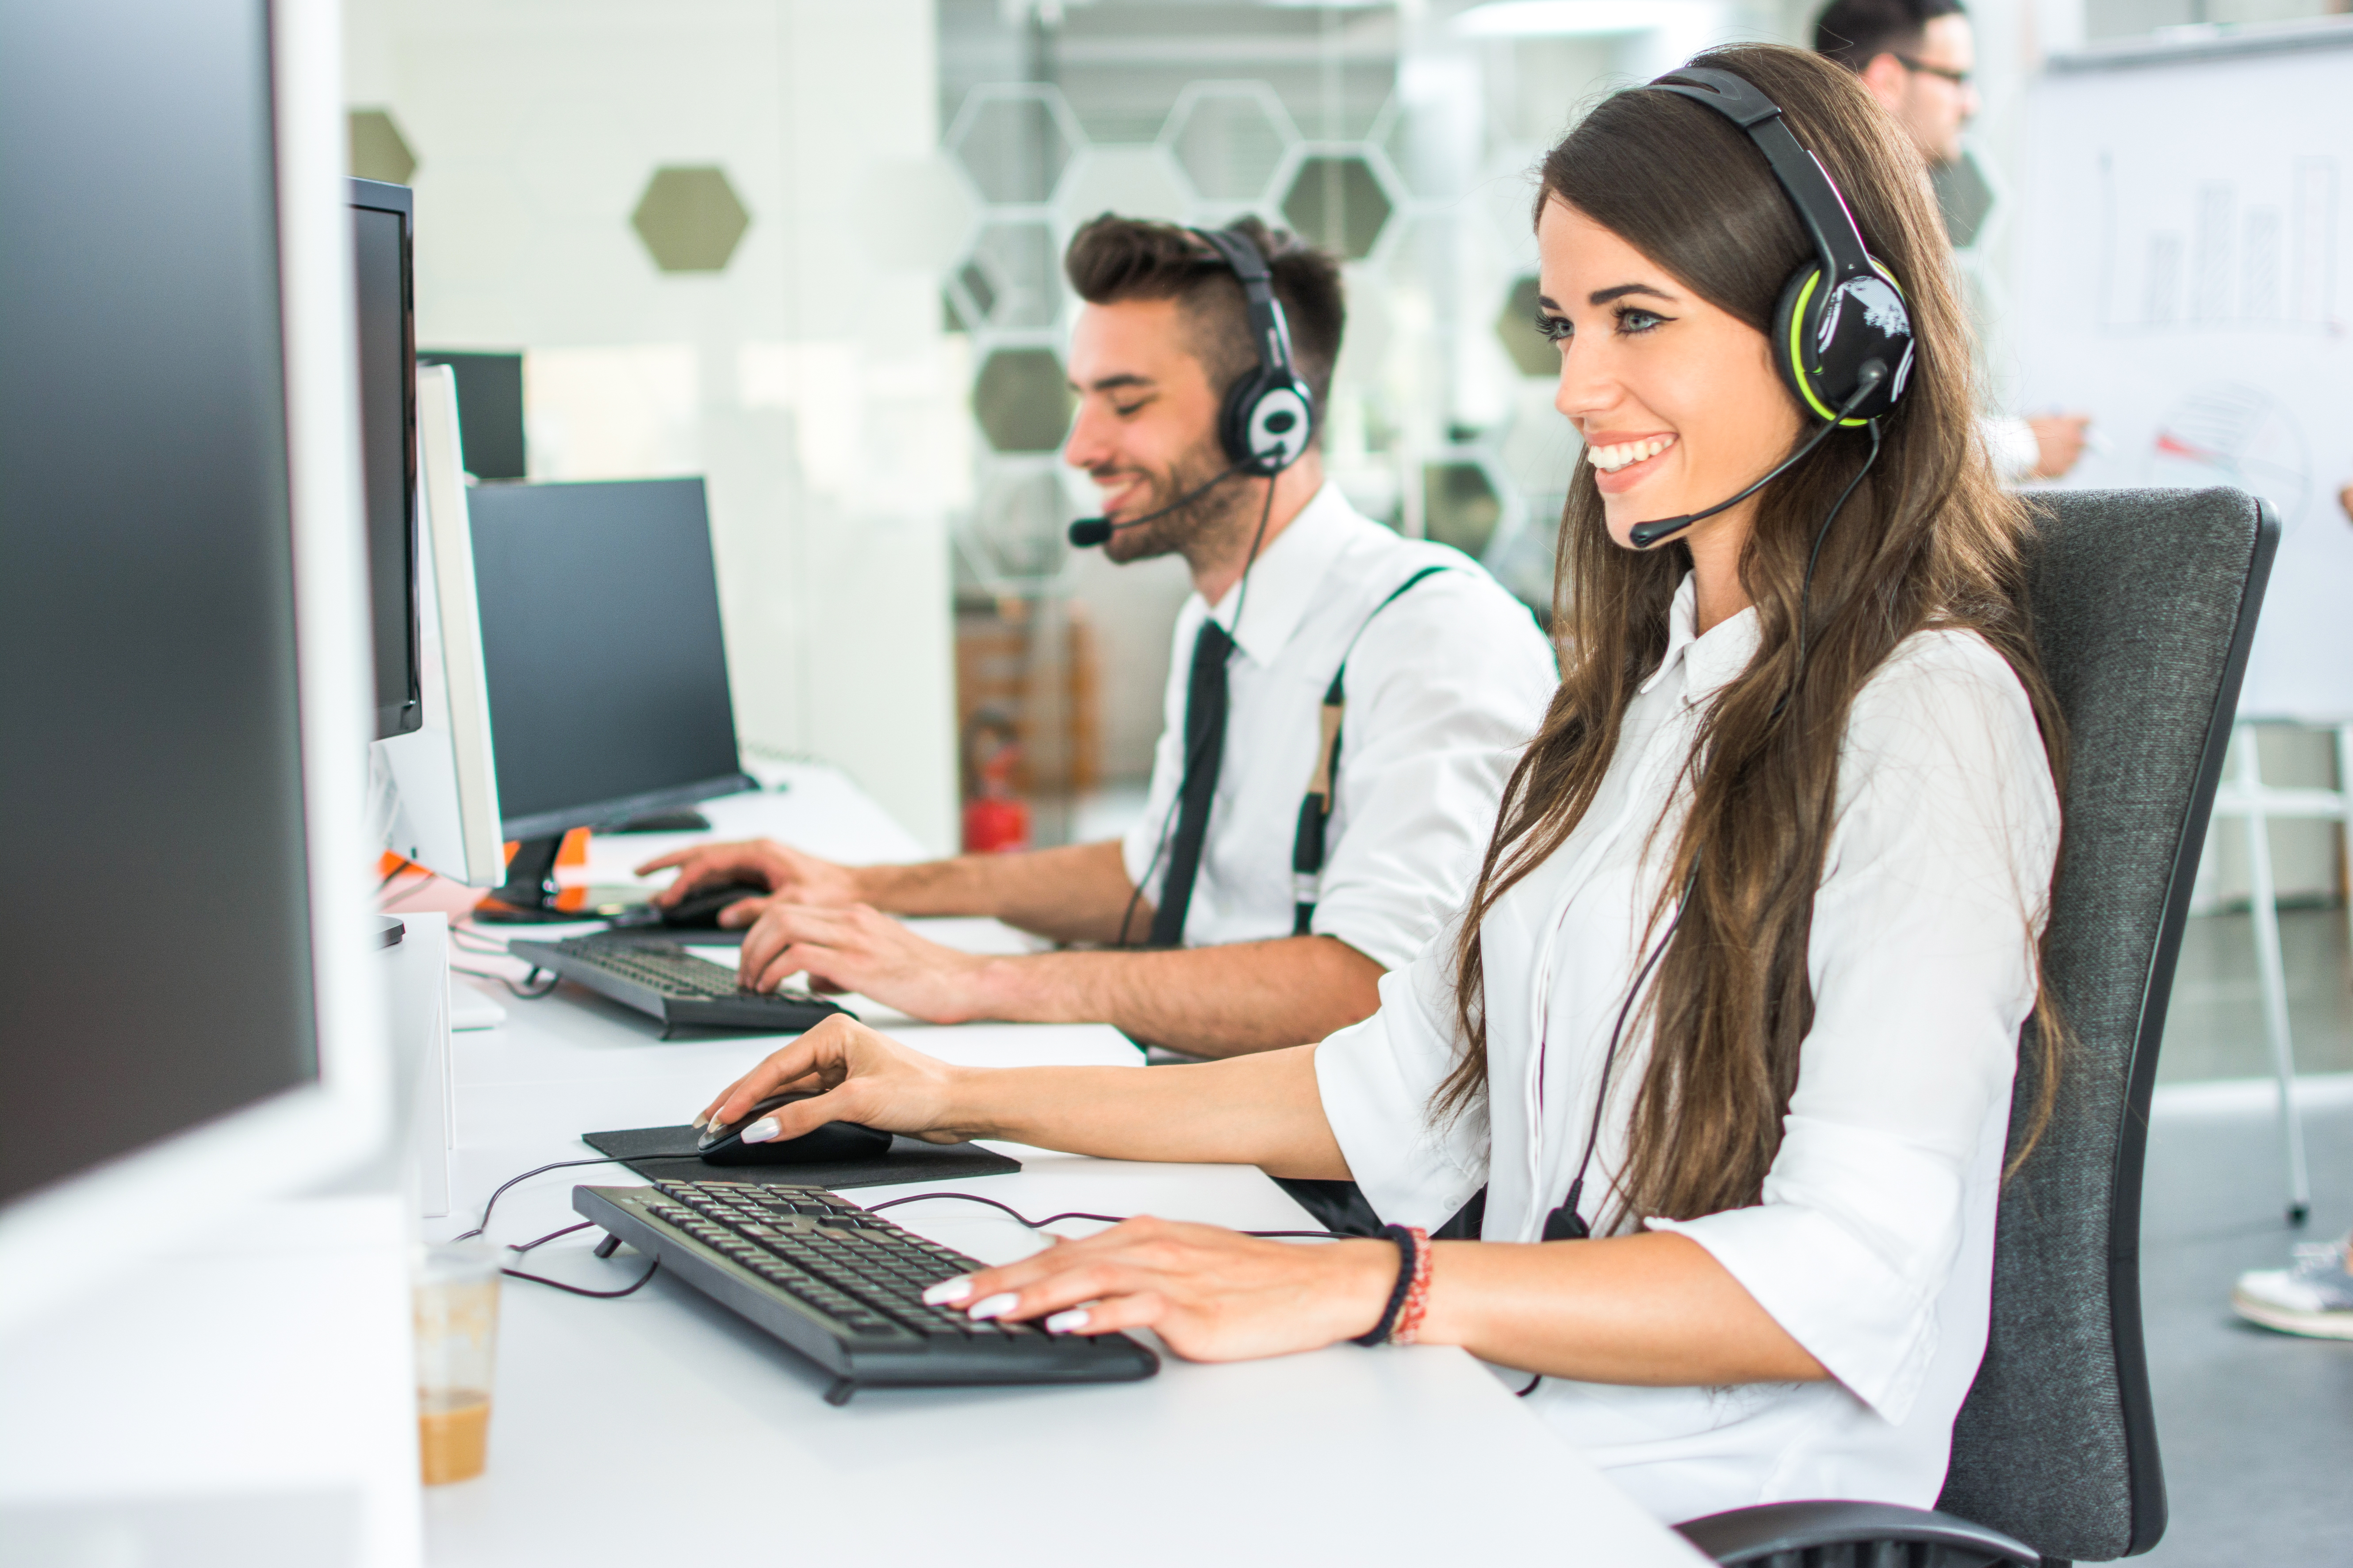 Live Receptionist / Phone Services - Virtual Office By Design